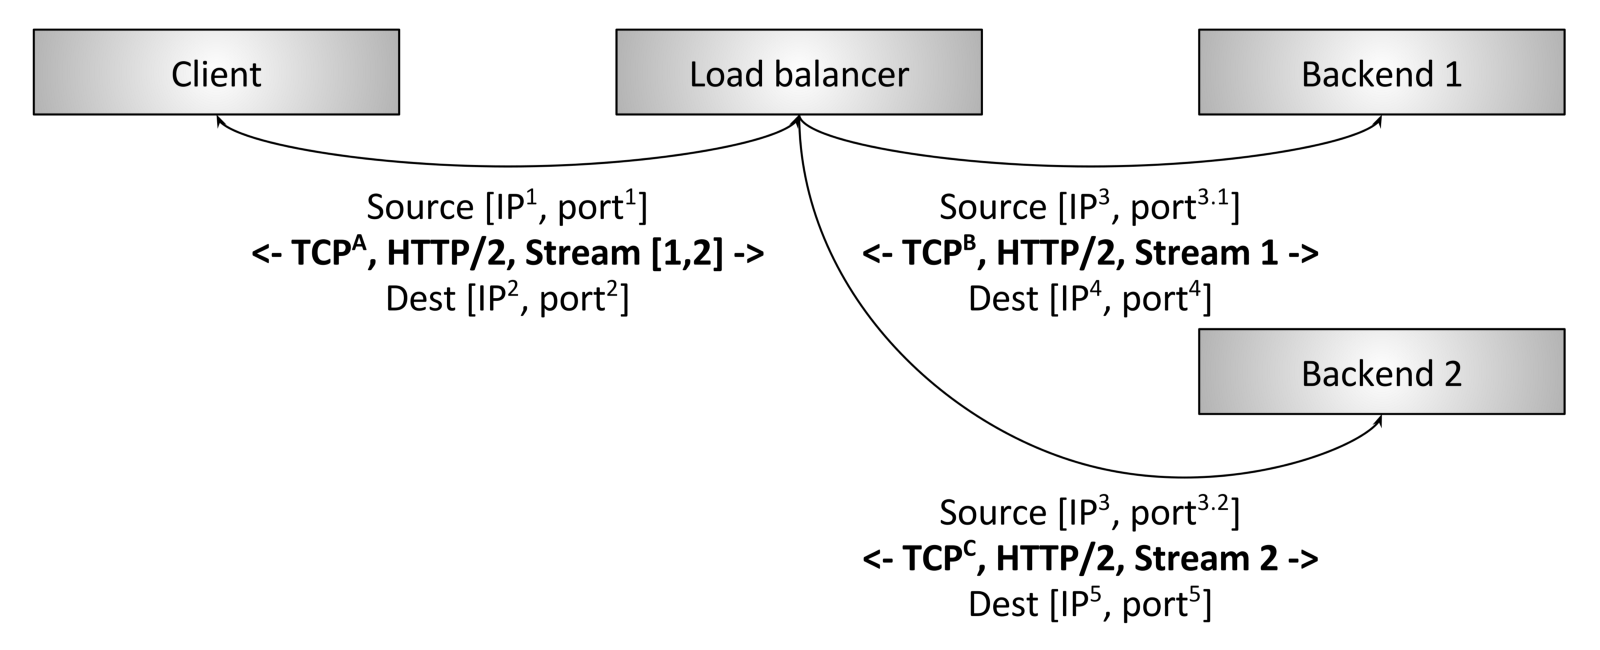 Introduction To Modern Network Load Balancing And Proxying Light Switch Wiring Diagram Furthermore Deta Double Power Point With Figure 3 Http 2 L7 Termination